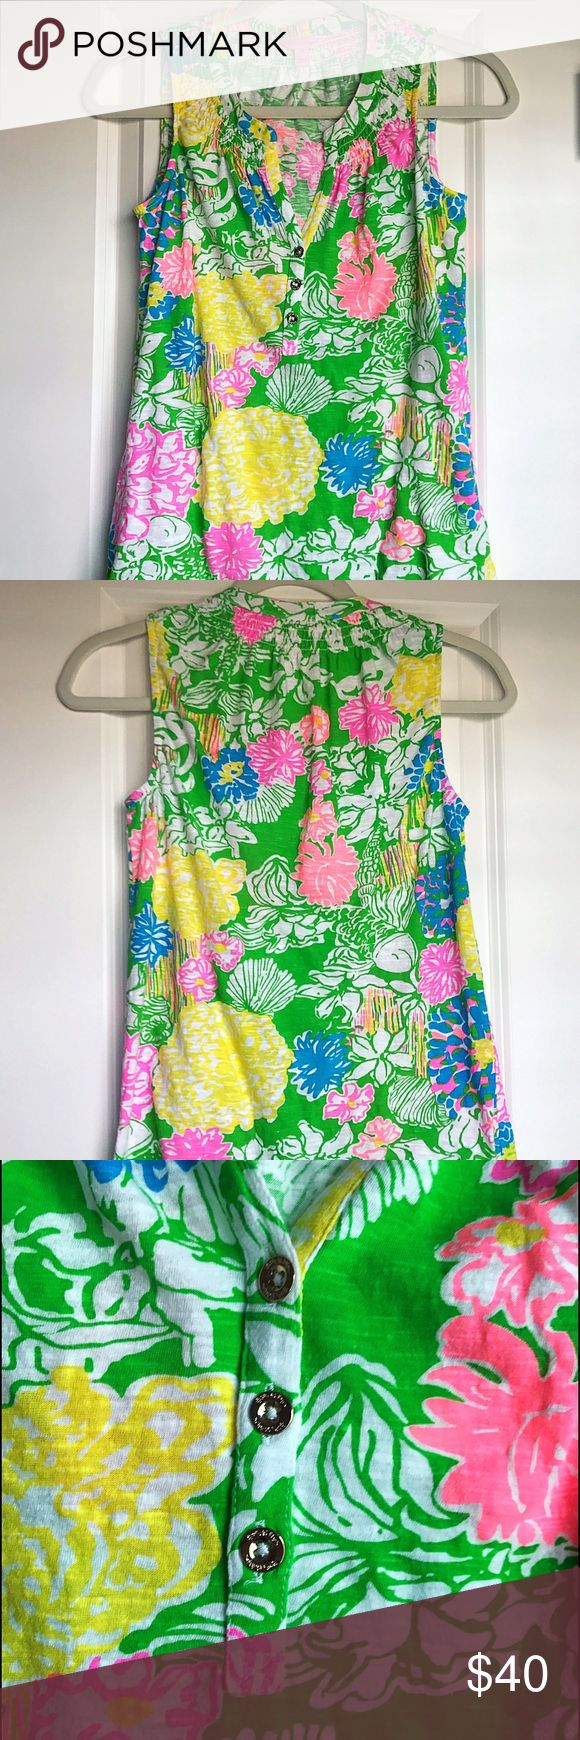 Lilly Pulitzer Multi Hibiscus Print Essie Top, XS Lilly Pulitzer Multi Hibiscus Print Essie Top, Size XS. EUC, only worn twice. No stains or tears. Gold button detail. Cotton Jersey, smocking around neckline. Bright, beautiful top for spring! 🌺 Lilly Pulitzer Tops Tank Tops